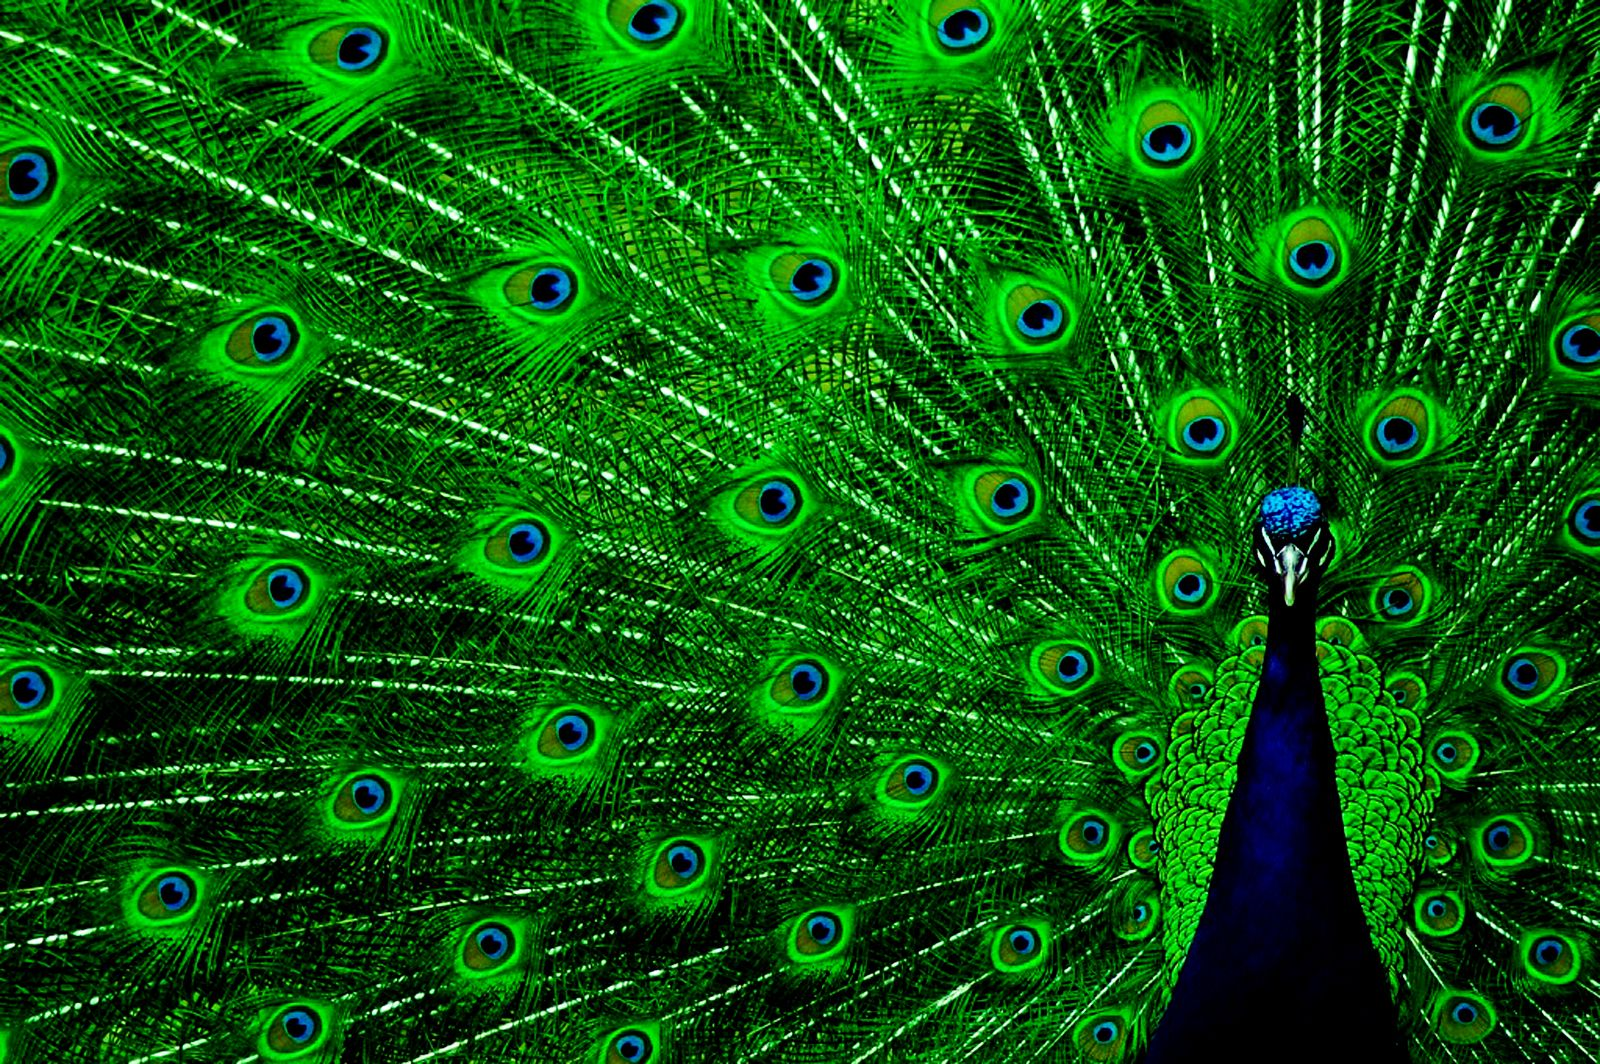 peacock backgrounds images